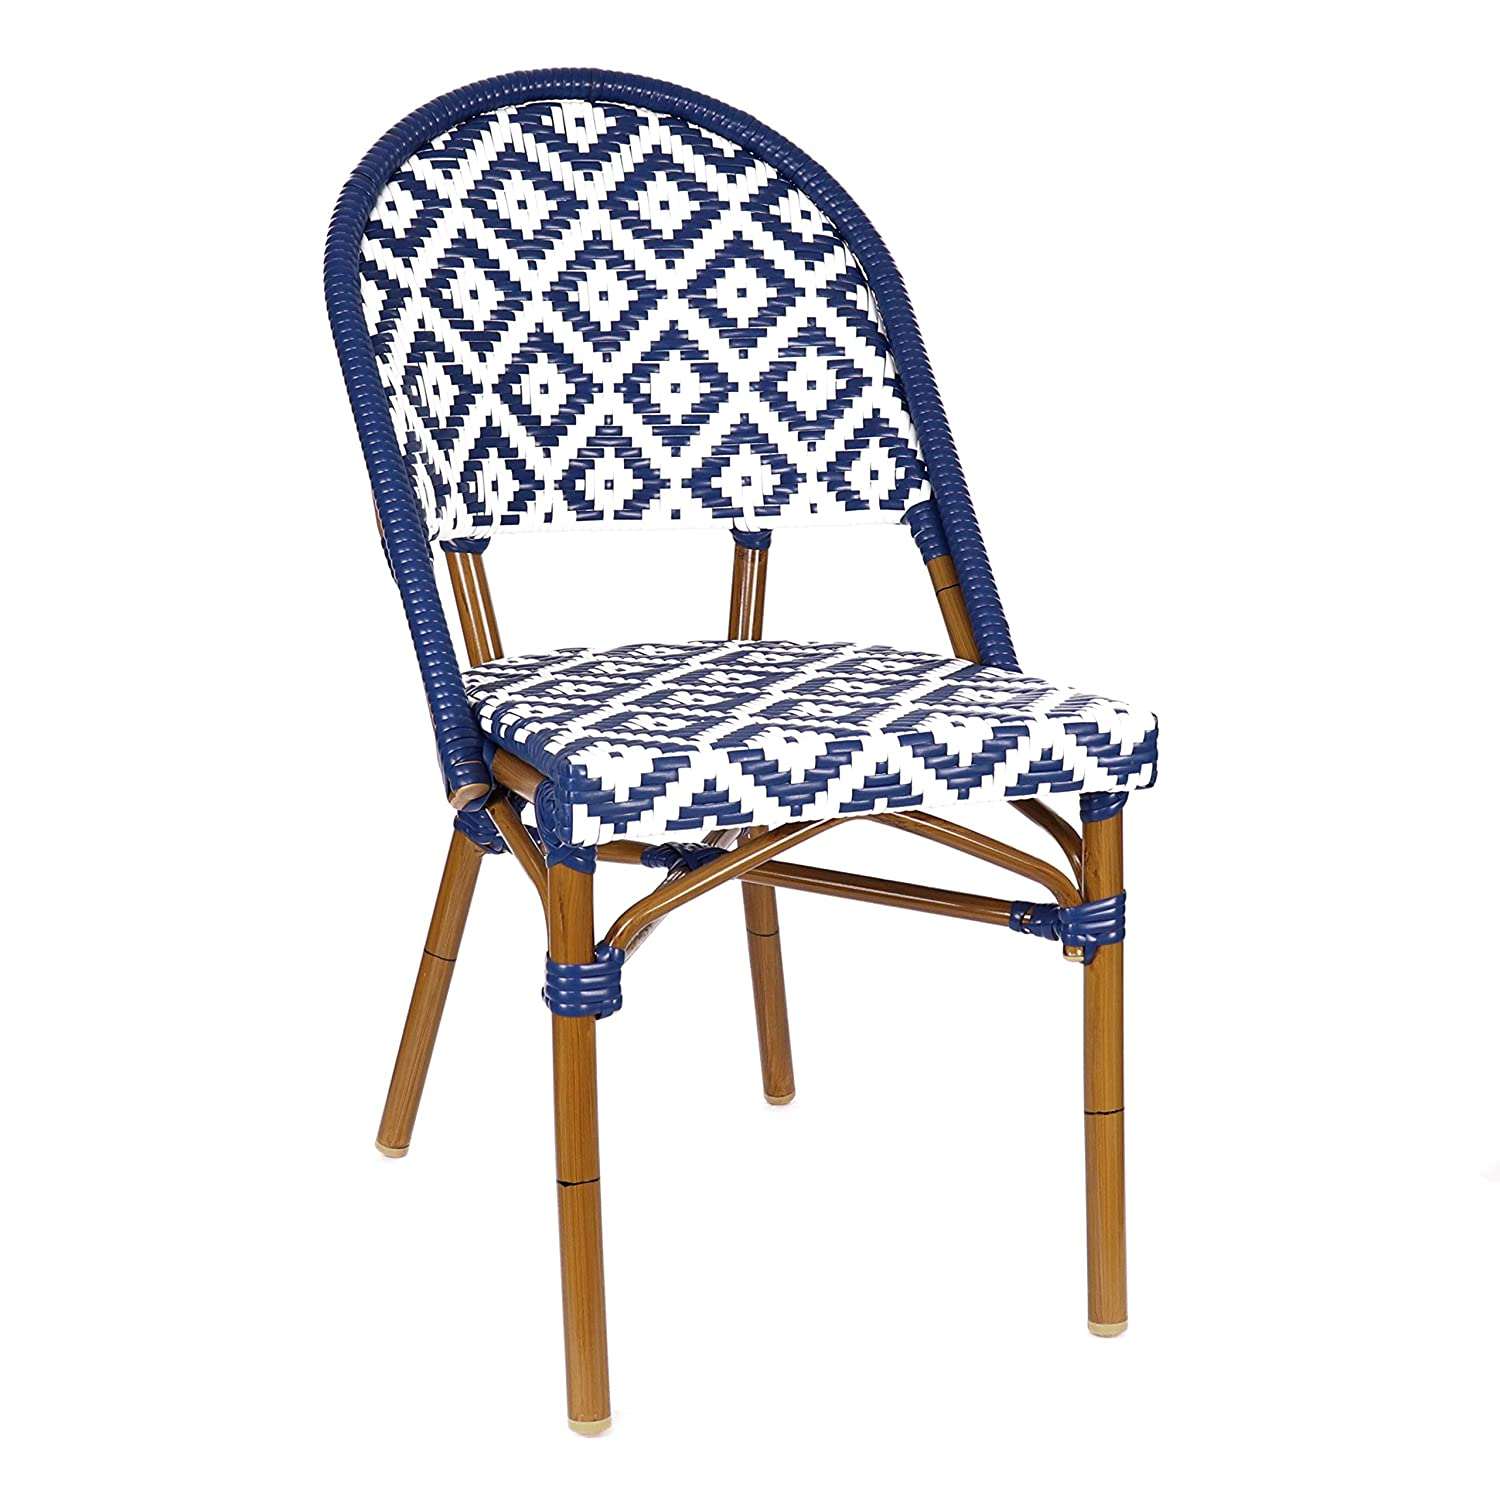 Blue and white aluminum bamboo bistro Paris cafe dining chair.